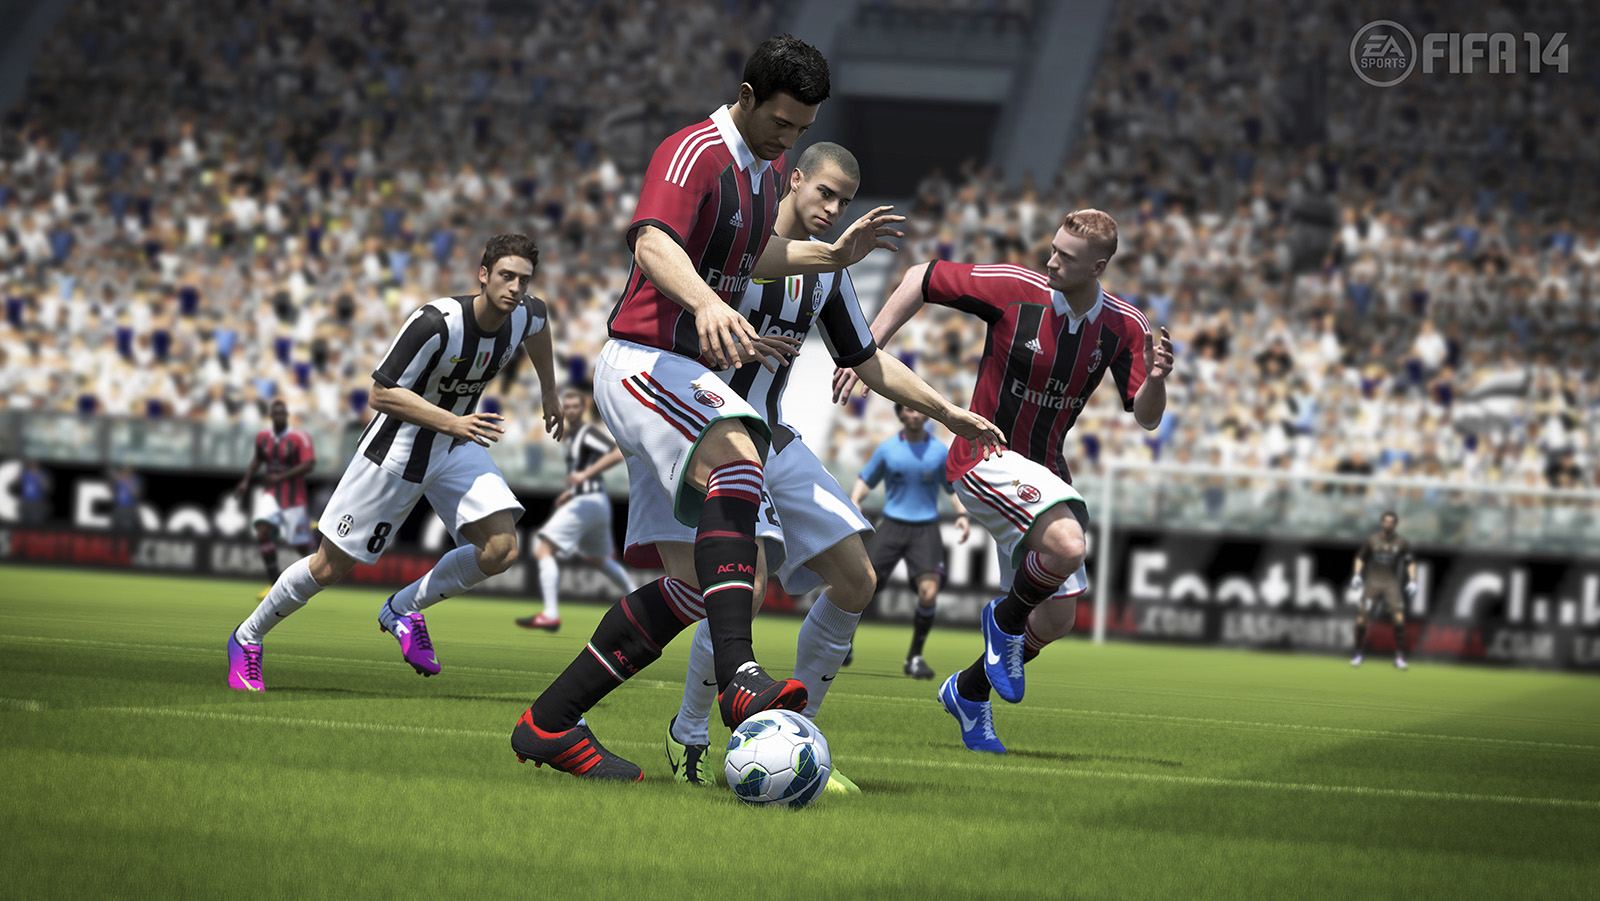 fifa14-it-protect-the-ball a